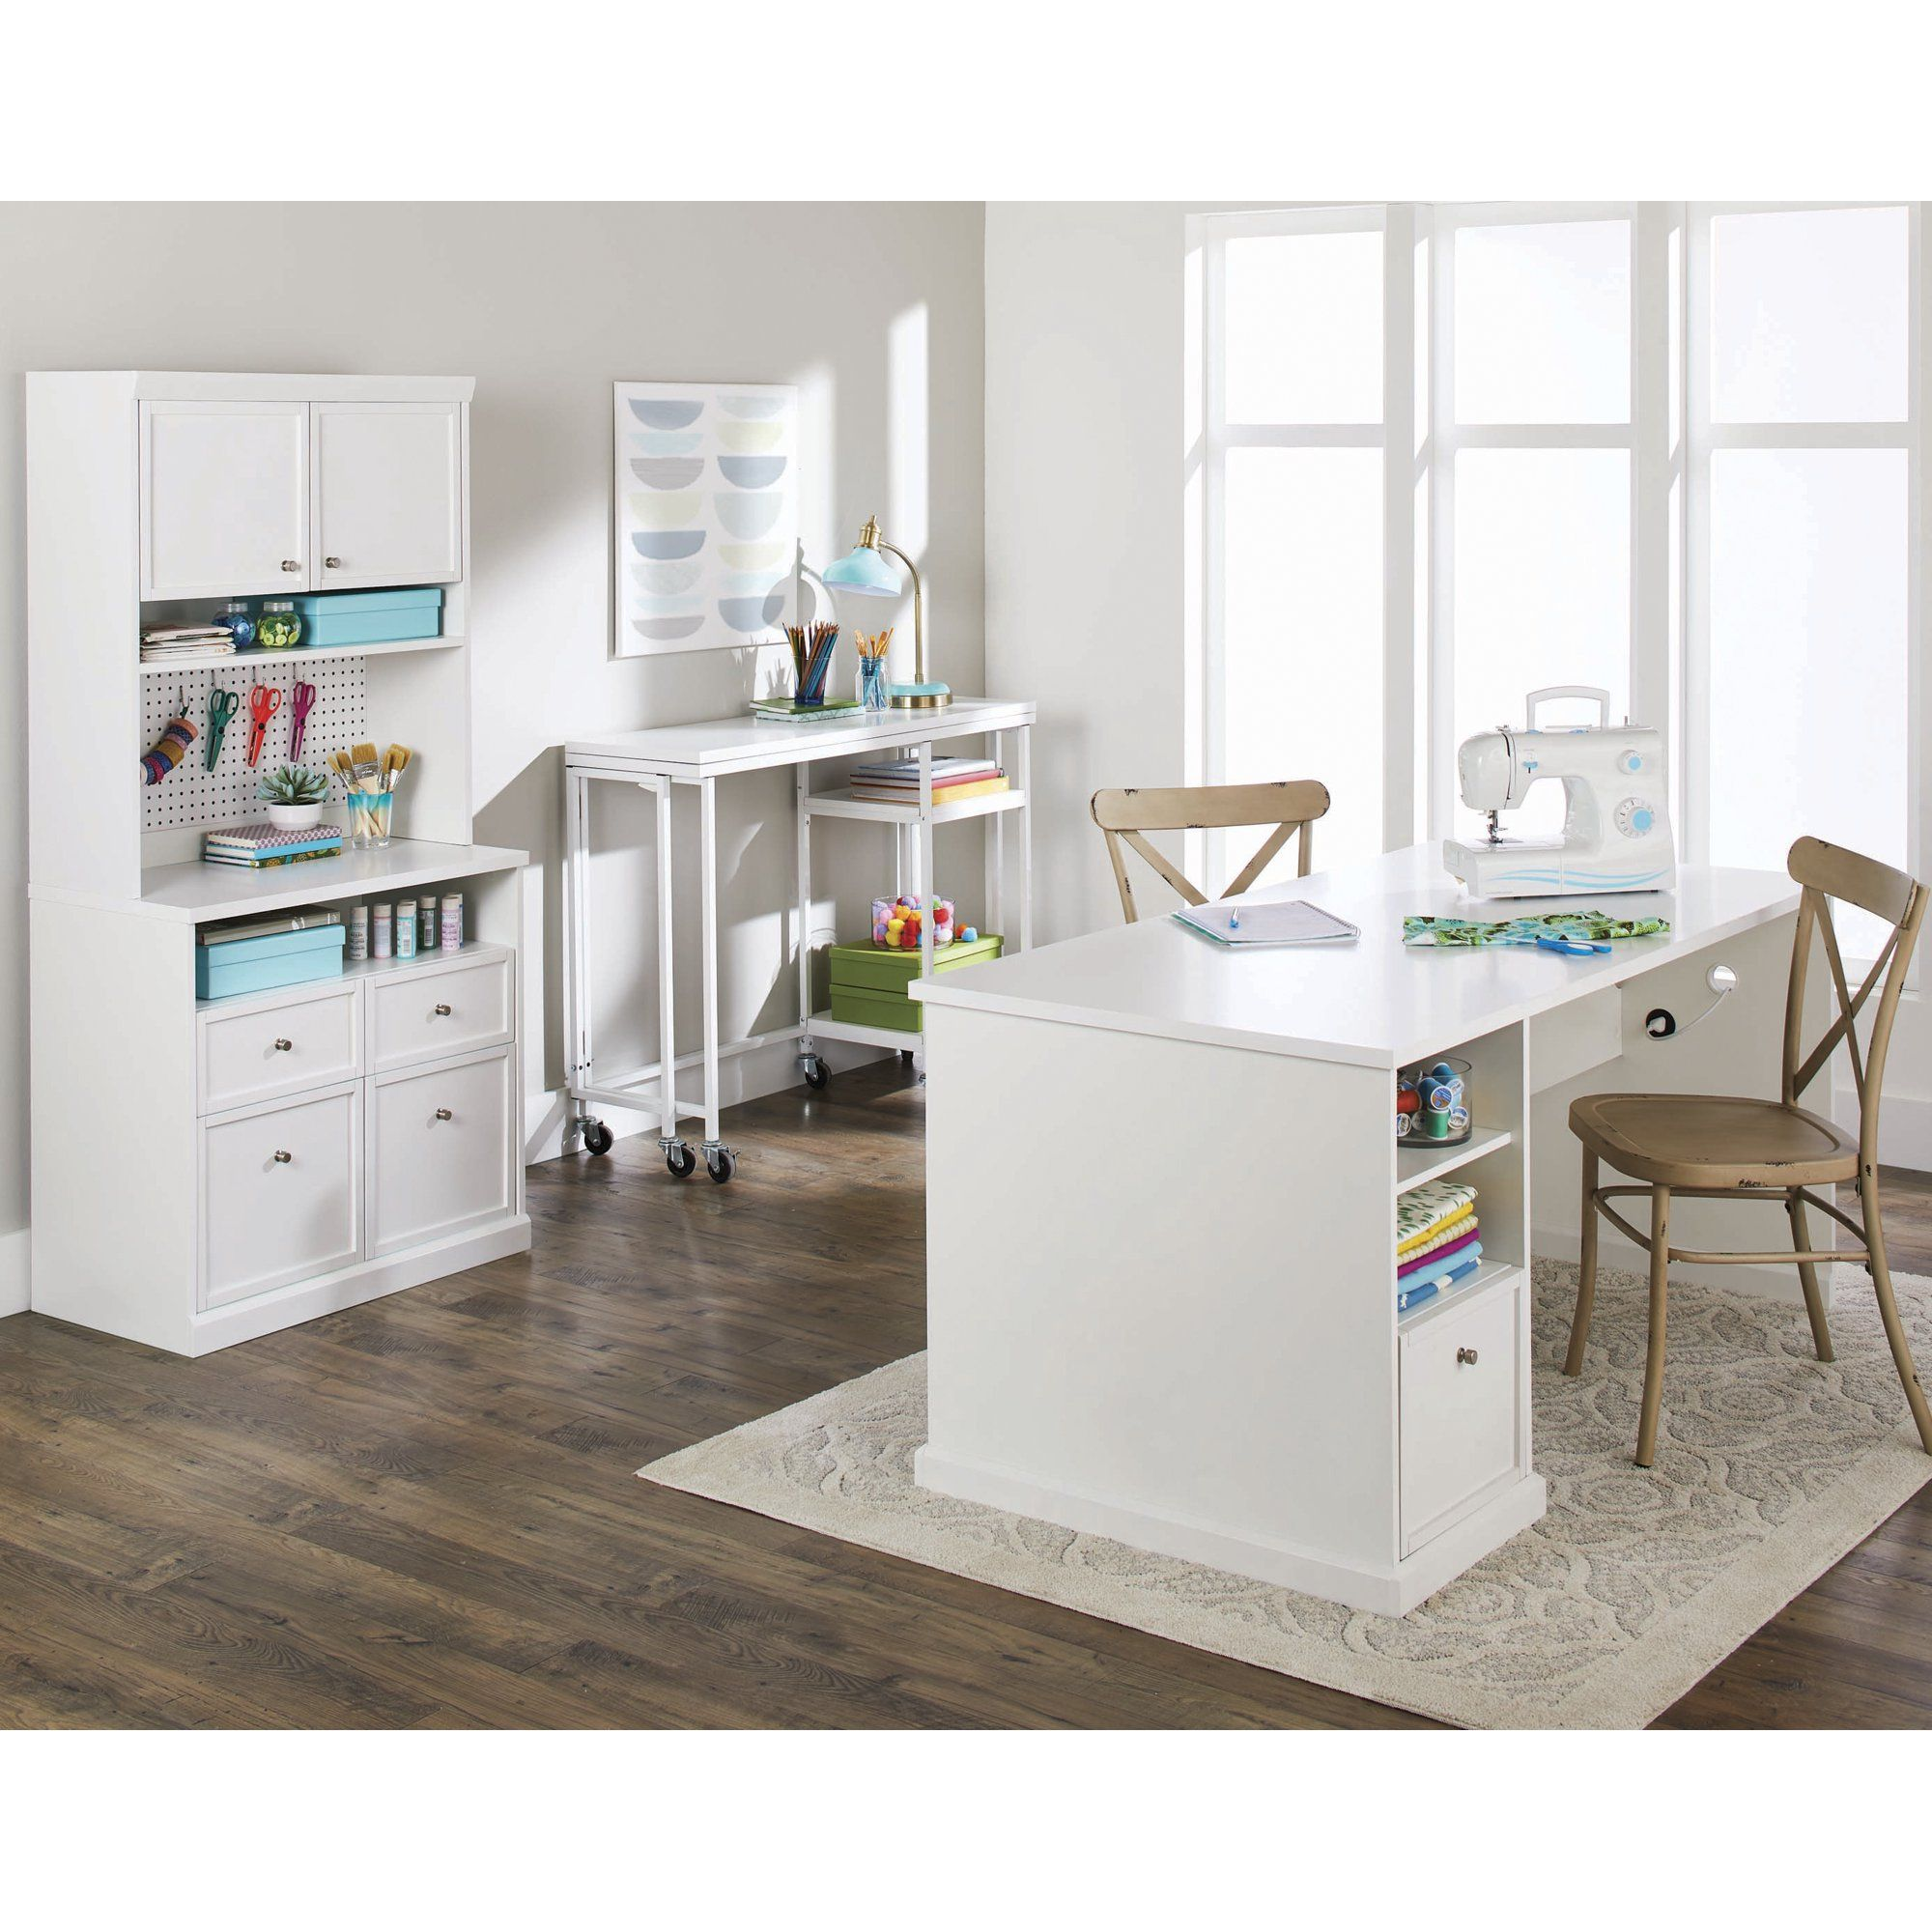 Better Homes Gardens Craftform Counter Height Fold Out Craft Table White Finish Walmart Com Office Craft Room Combo Craft Table Craft Room Desk